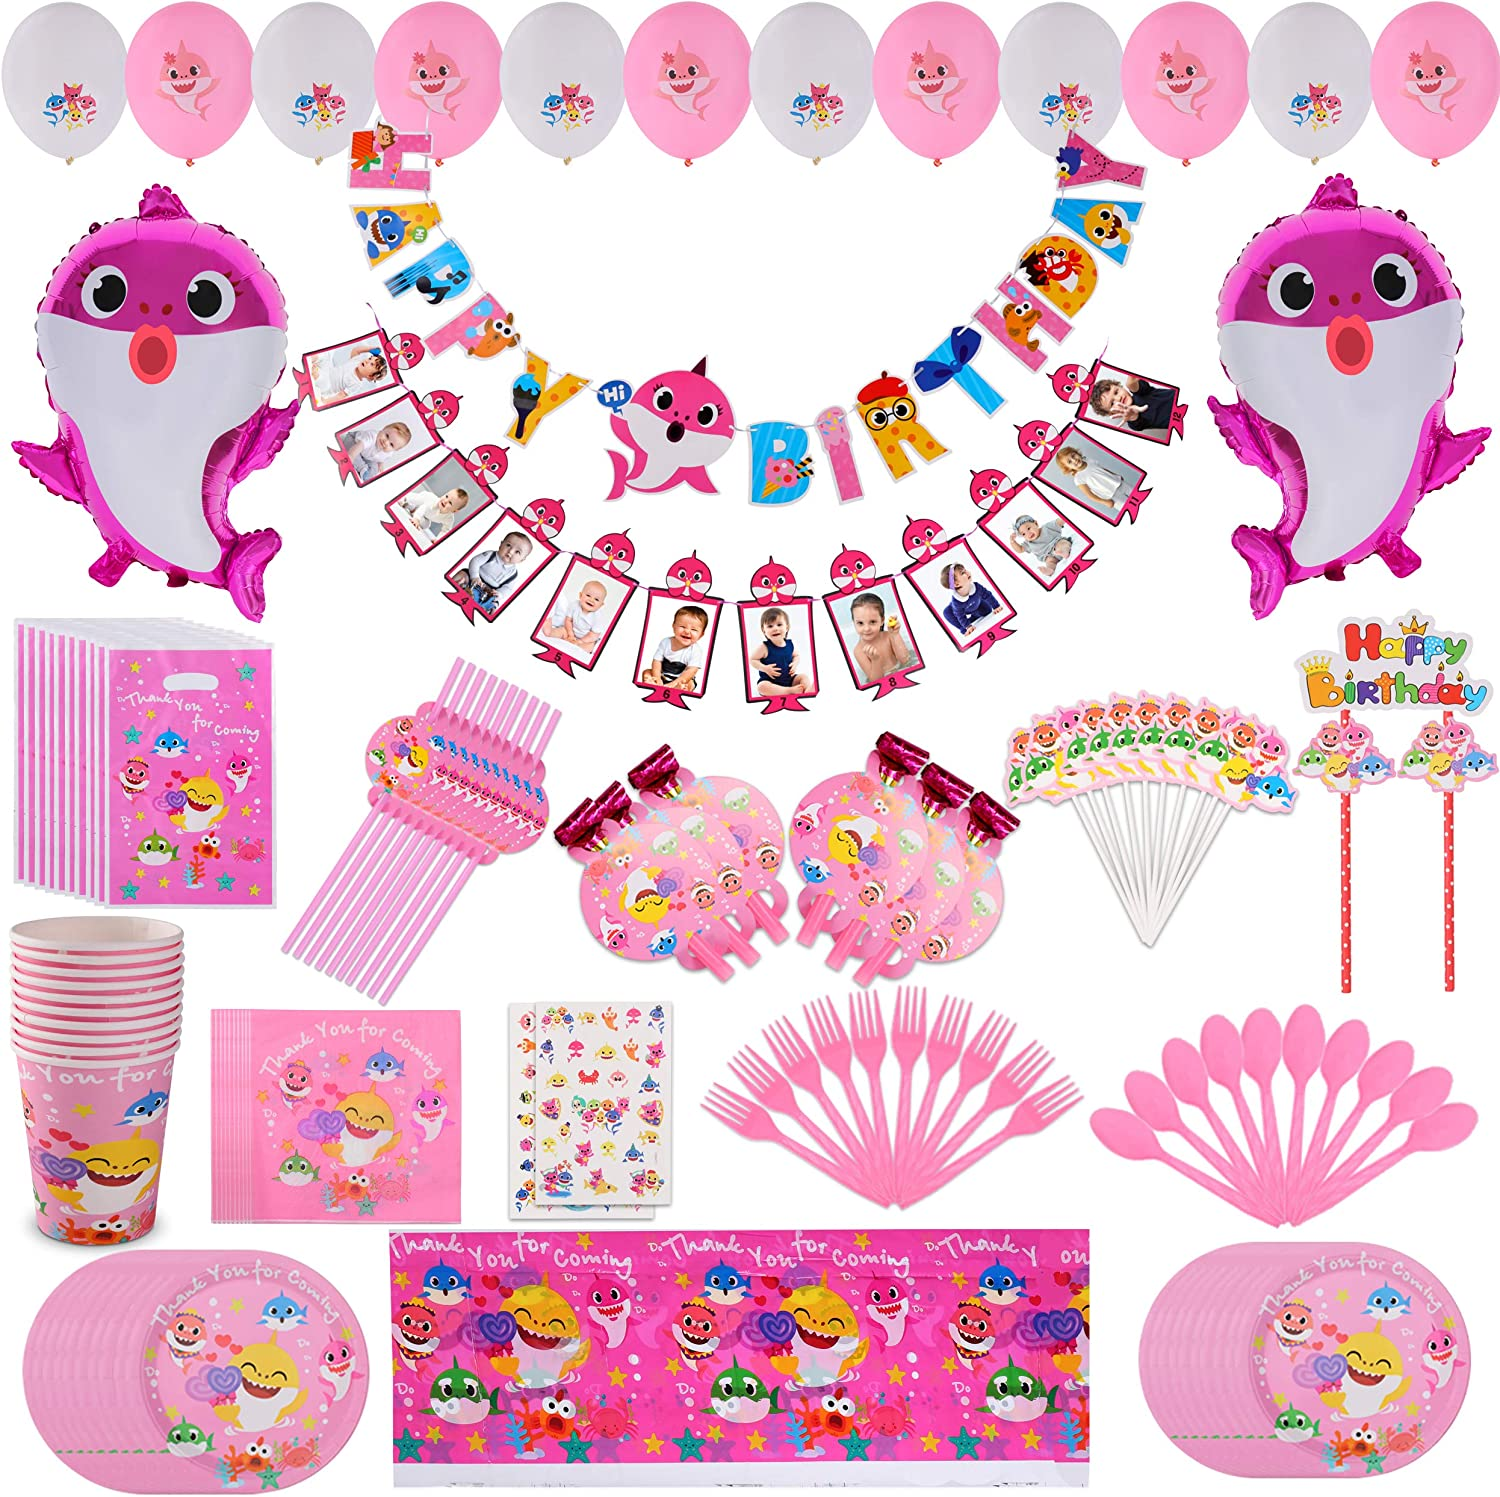 Pink Baby Shark Party Supplies First 1st Birthday for Girl, Shark Baby Birthday Decorations kit - 12 Month Photo Banner Baby Shark Happy Birthday banner for Baby Girls Bday Disposable Tableware Cake Topper Latex balloons Plates Spoon Cups Napkins Straws Shark Temporary Tattoos